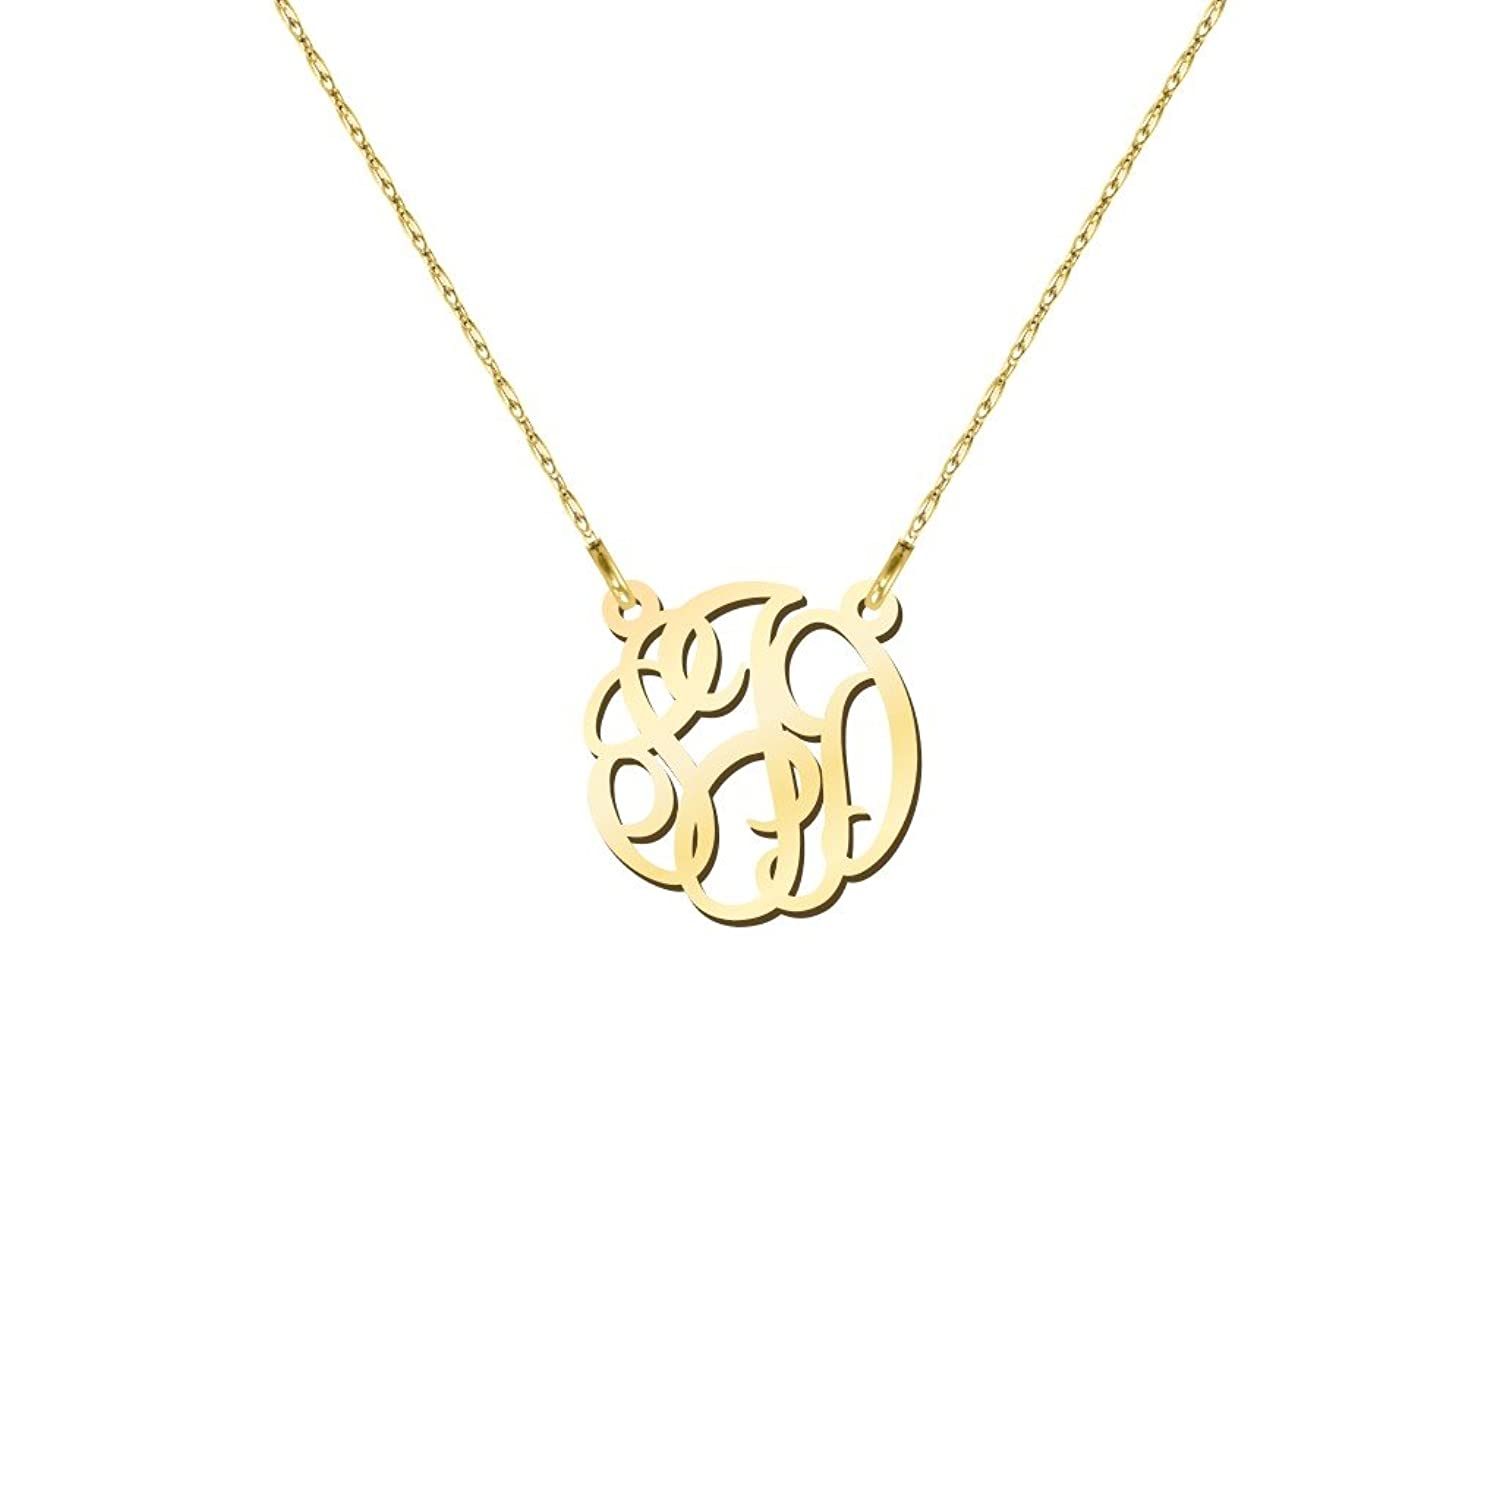 10K Gold Petite Personalized Monogram Pendant by JEWLR